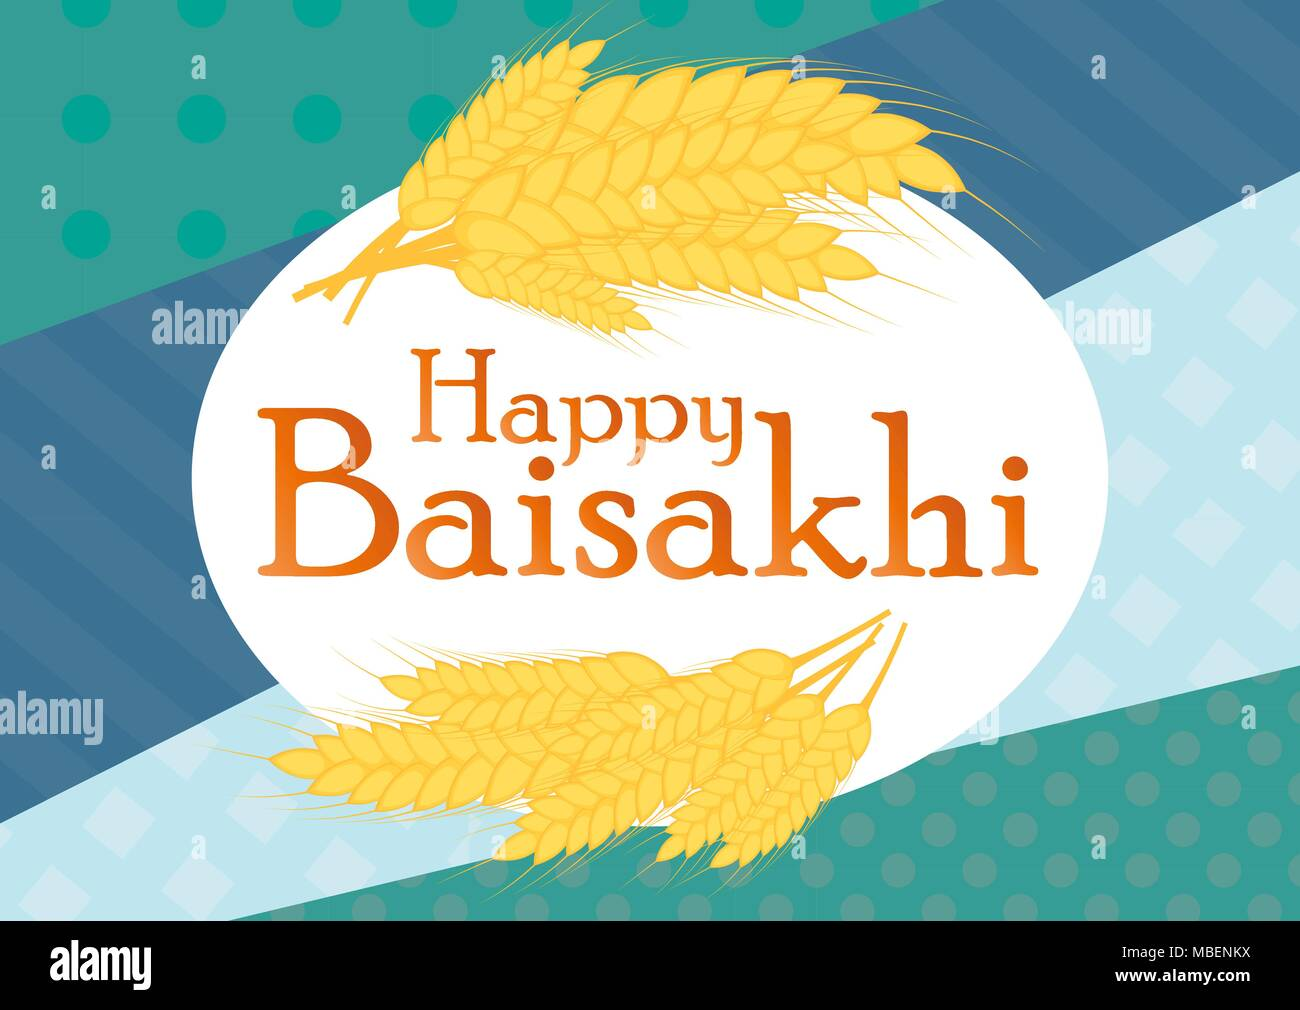 illustration of Happy Baisakhi Punjabi spring harvest festival - Stock Vector